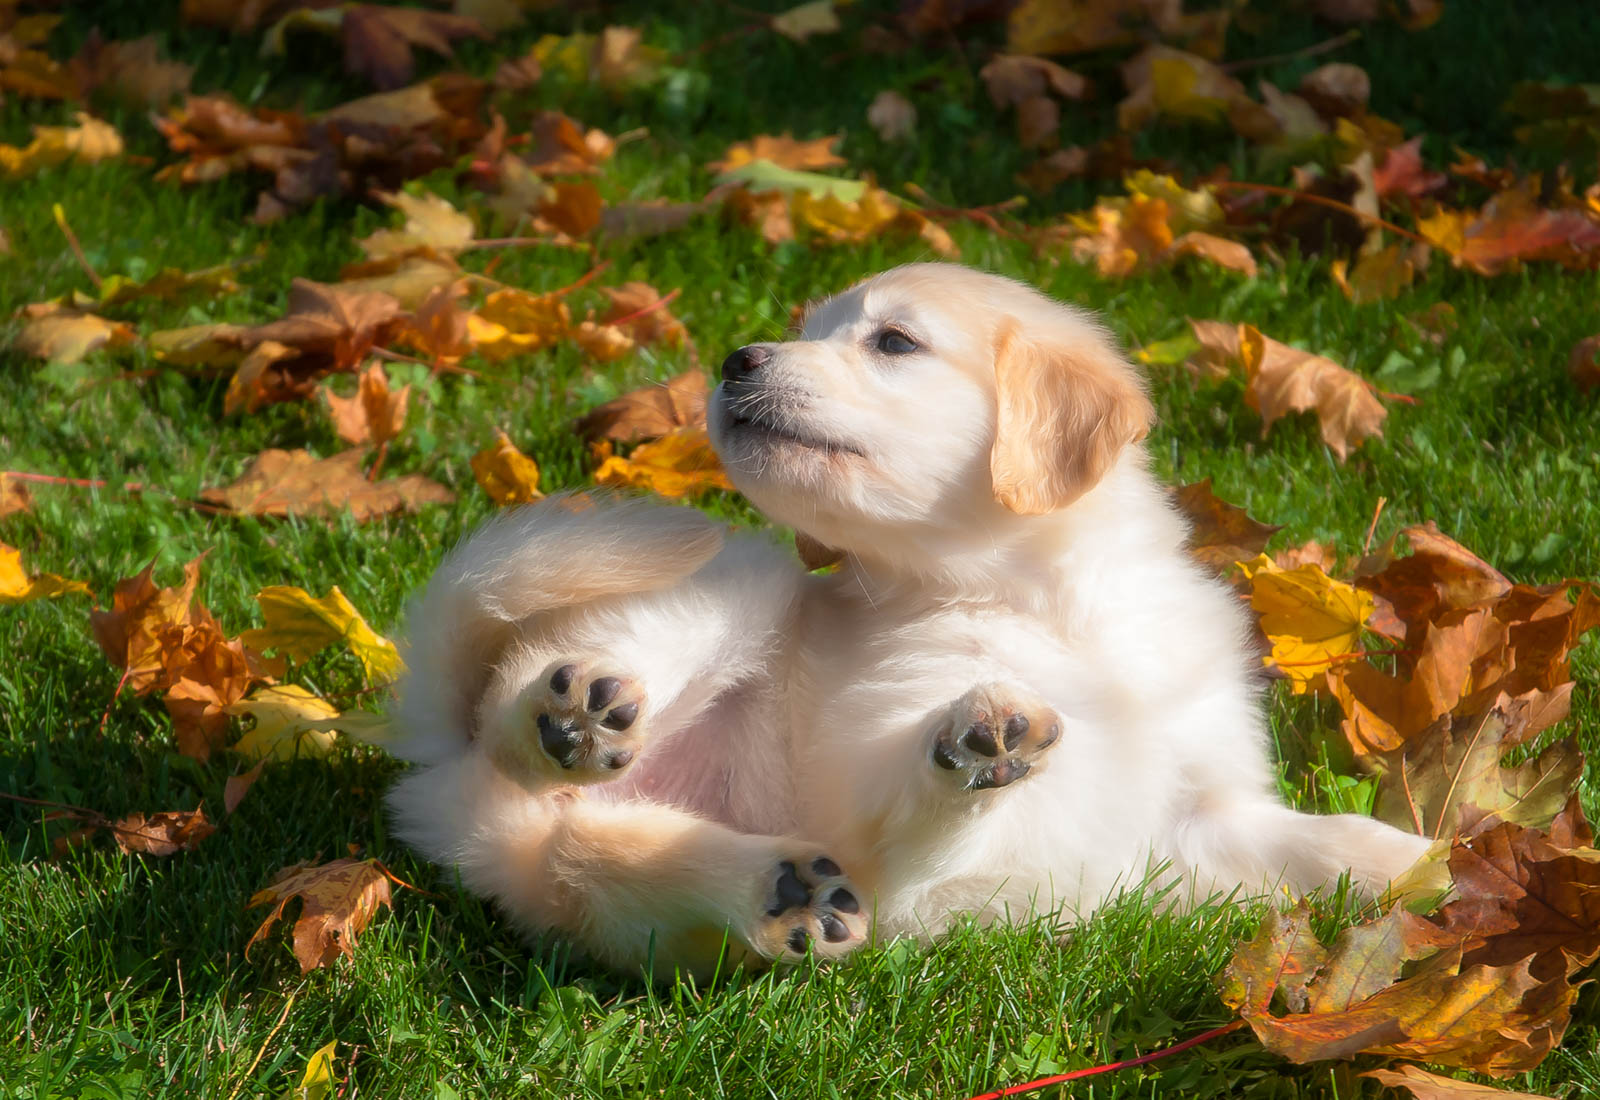 Golden Retriever puppy rolling in the leaves